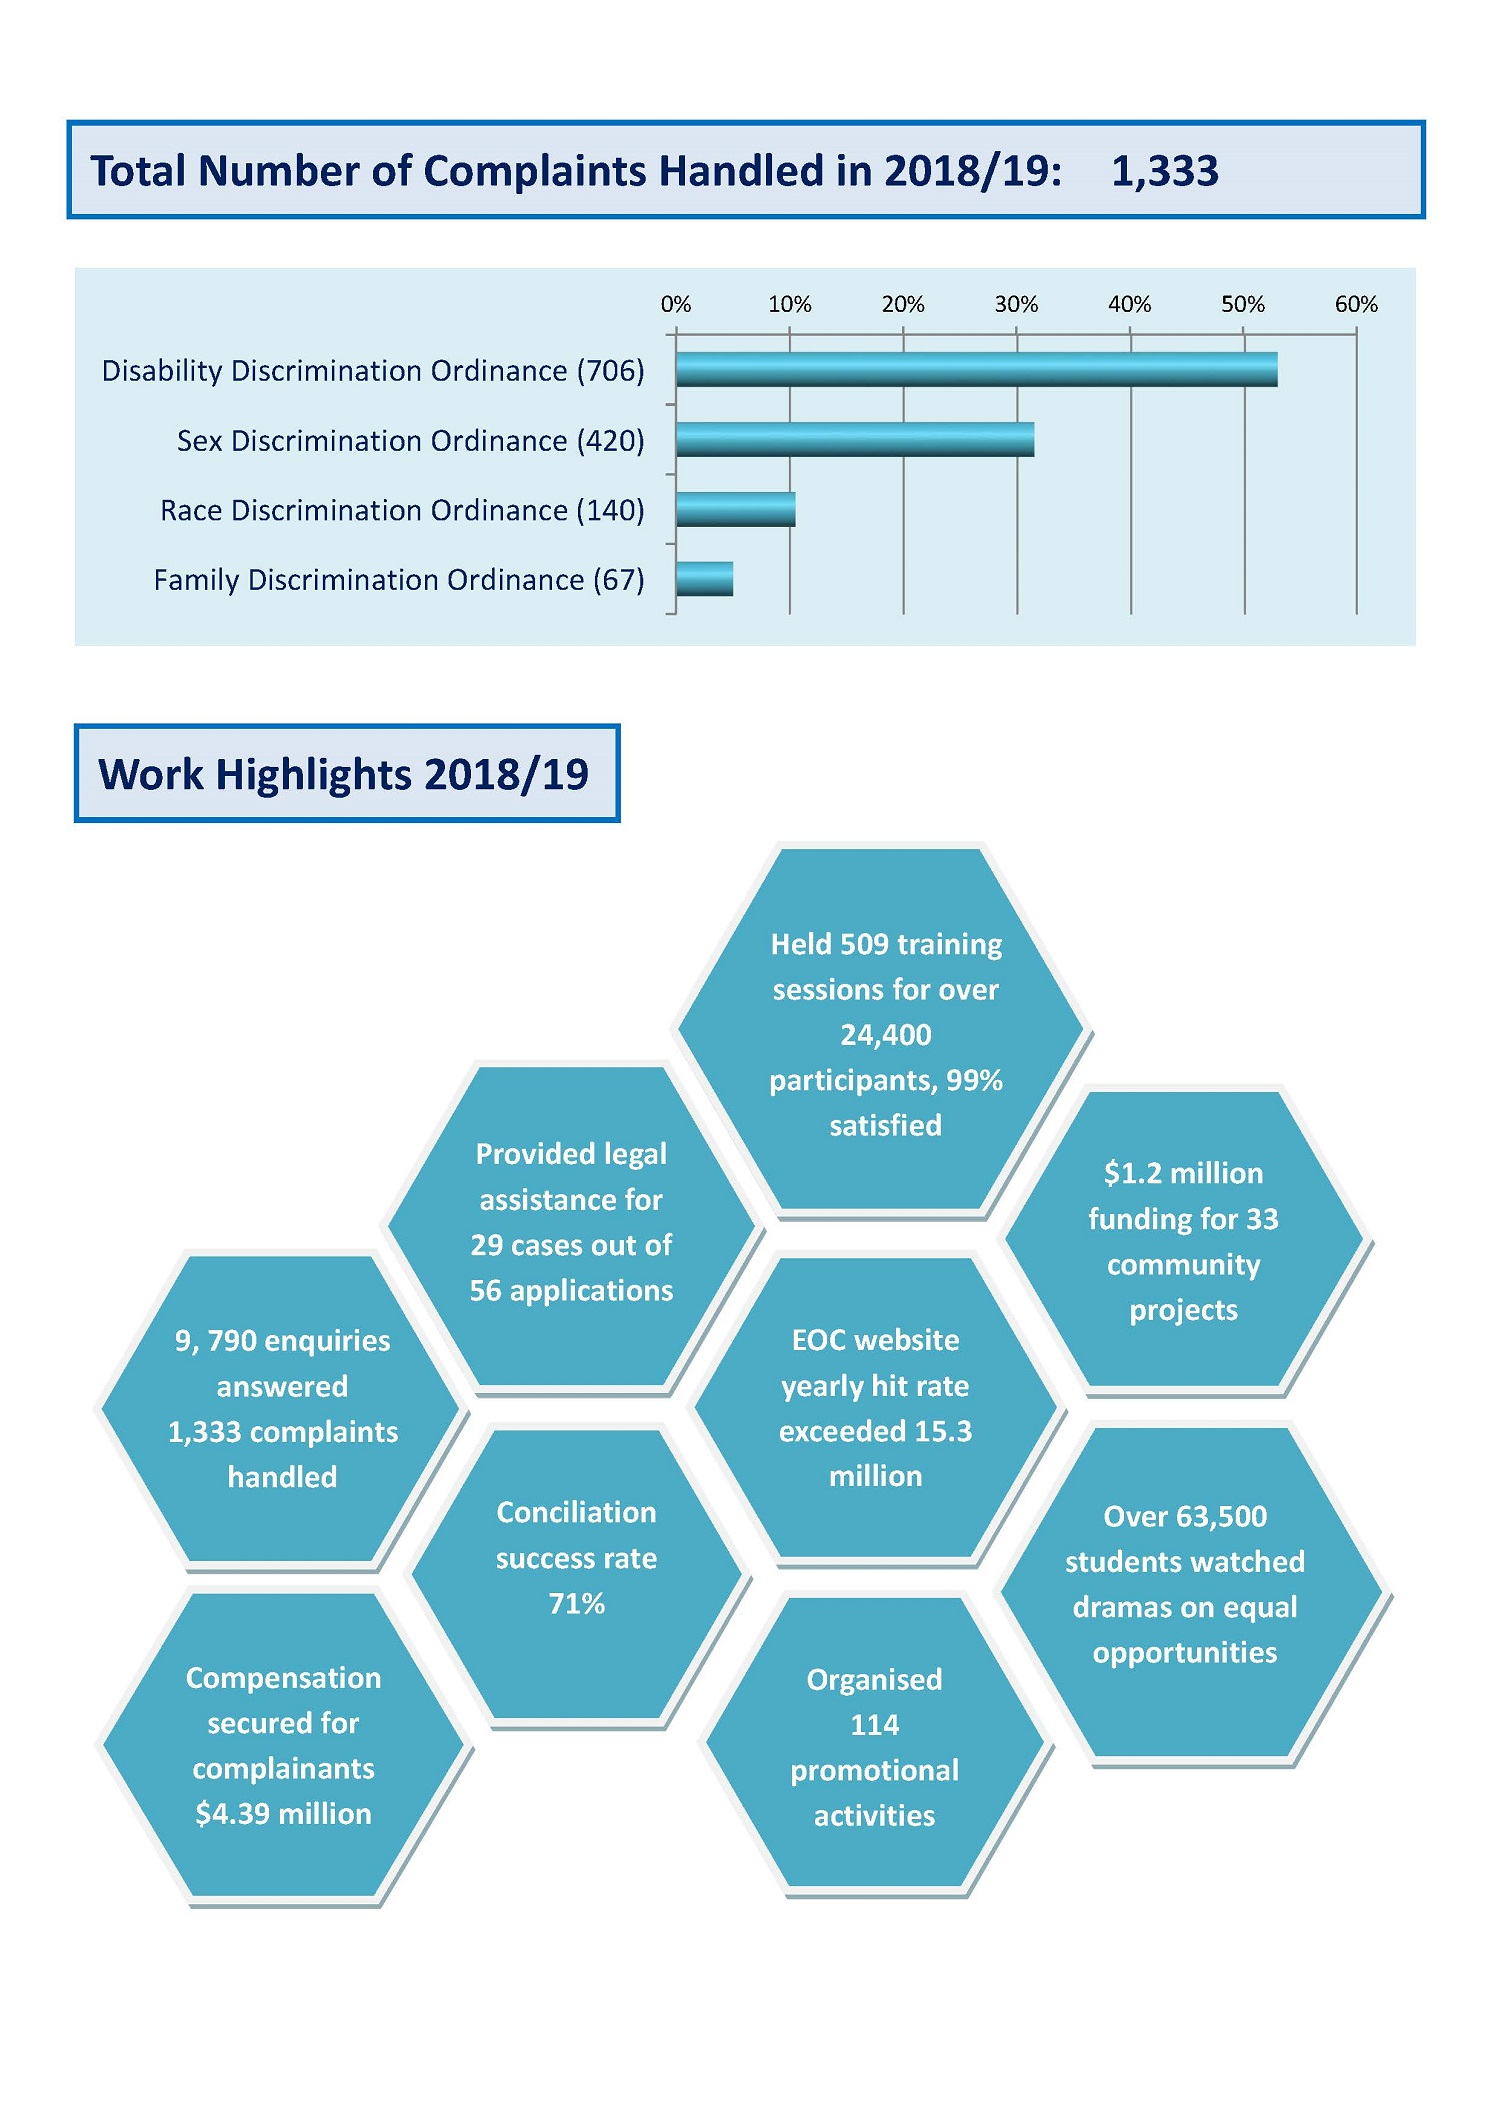 Work Highlights 2018/19 Page 2